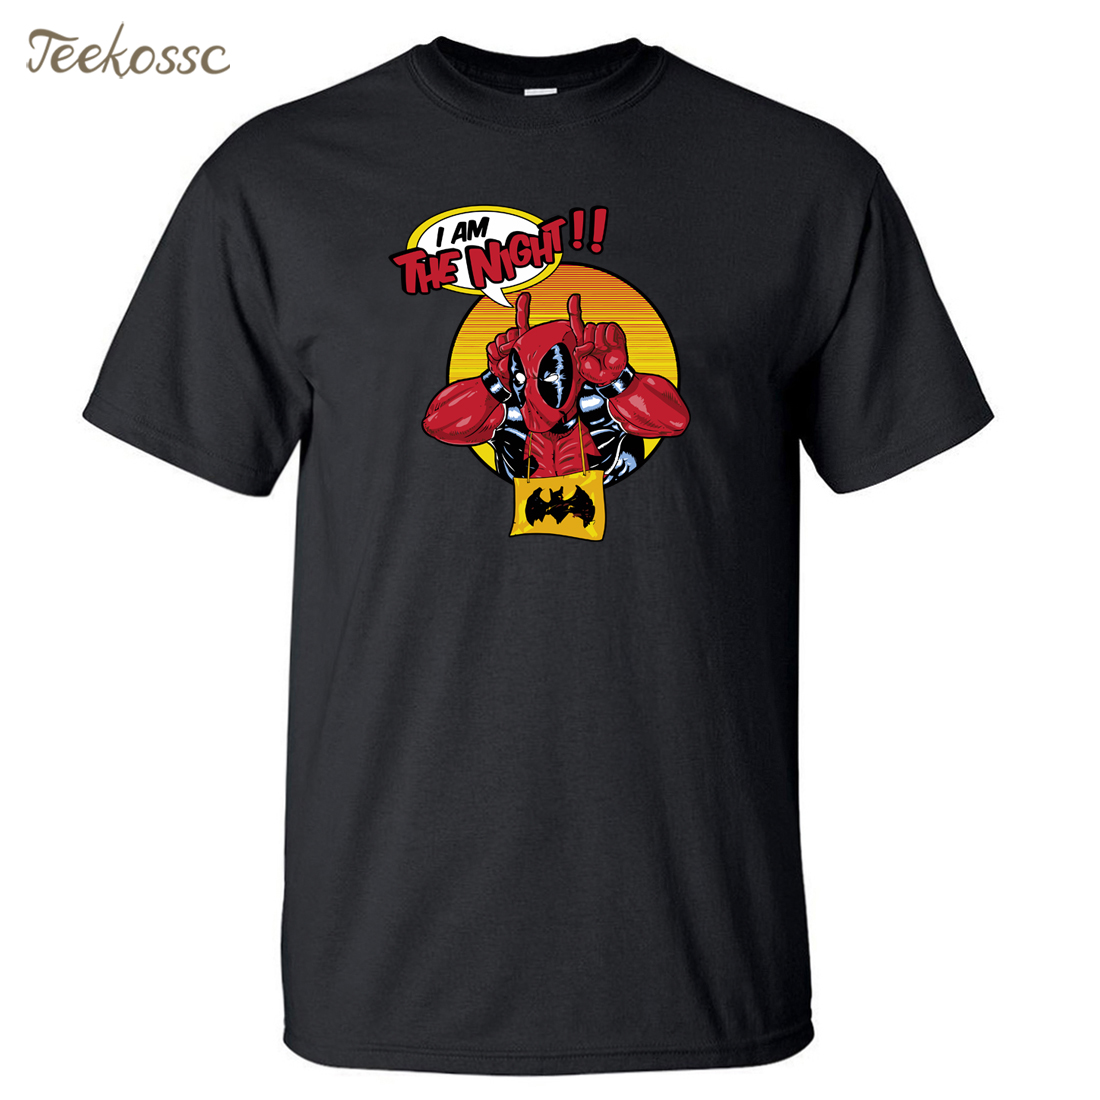 Deadpool T Shirt Men  I Am The Night Tshirt 2018 Summer Tops Tee Graphic T-Shirt Cotton Camiseta Dead Pool Funny T Shirts Mens